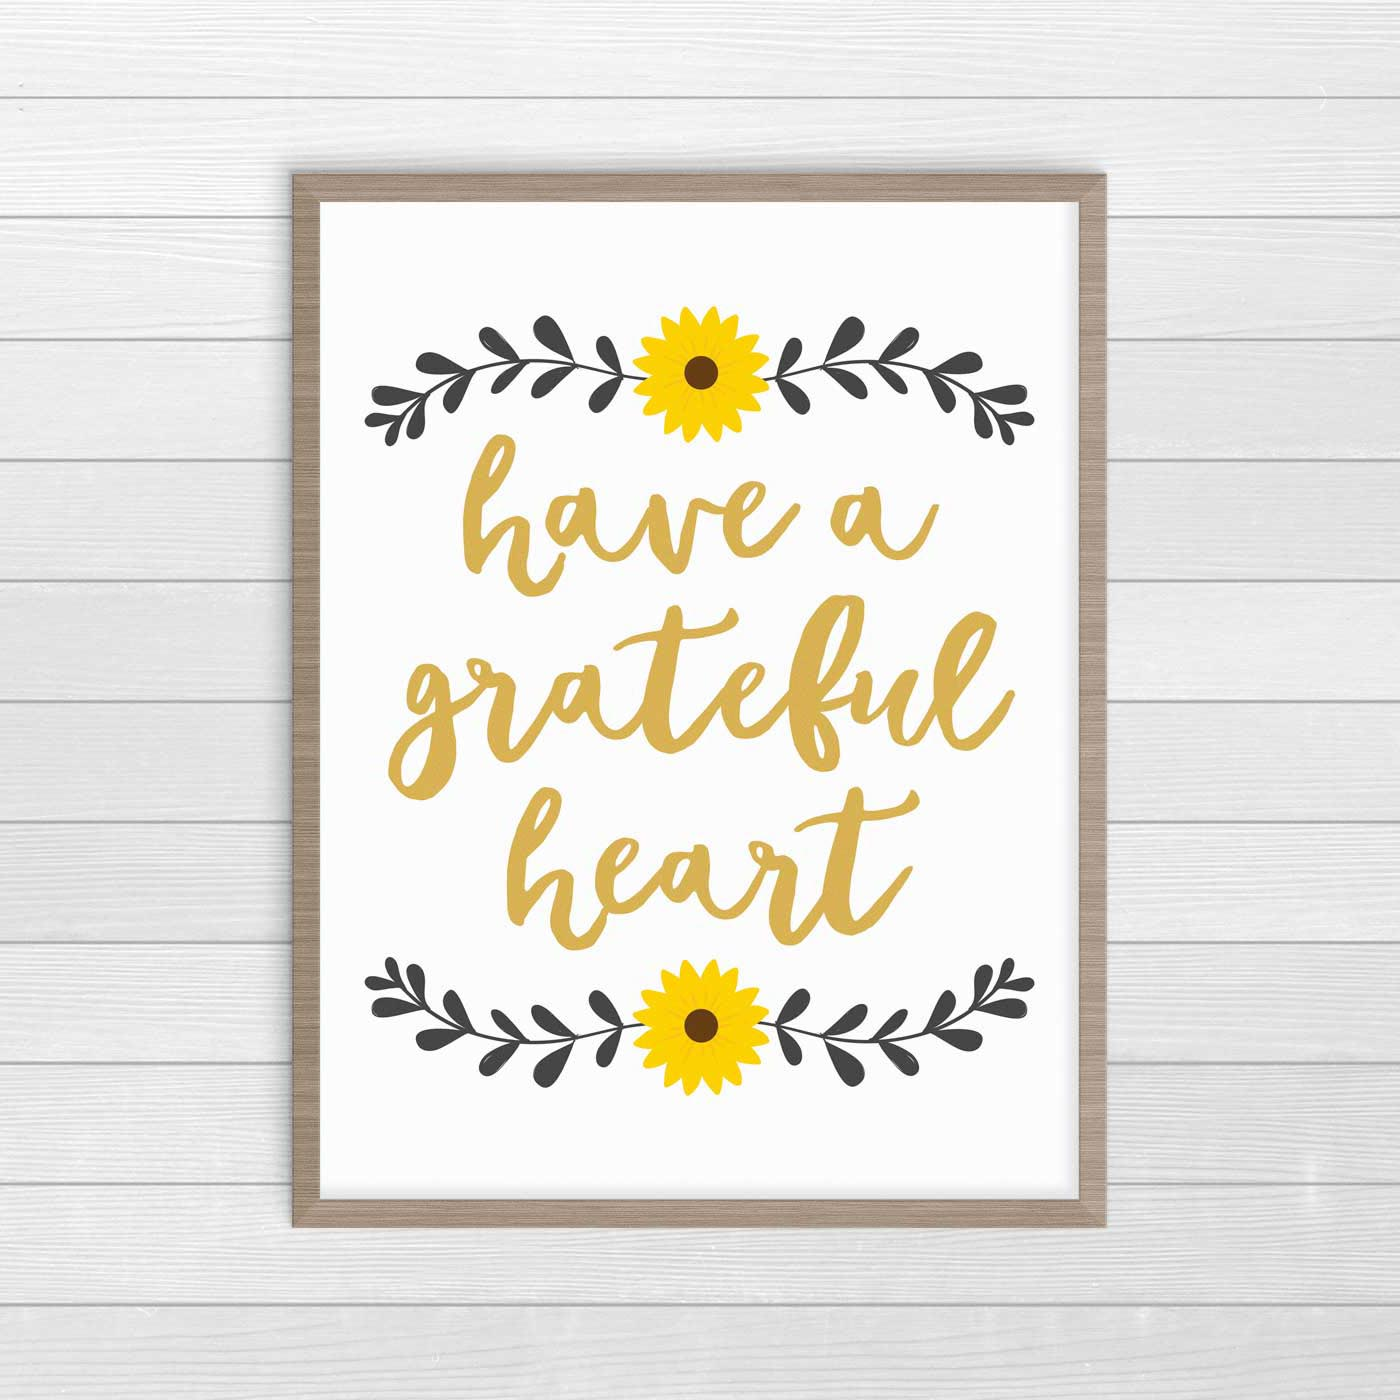 Gorgeous Thanksgiving Farmhouse decor prints. This Have a Grateful Heart print is free to download and print at home. #ThanksgivingDecor #FreePrintables #FarmhouseDecor